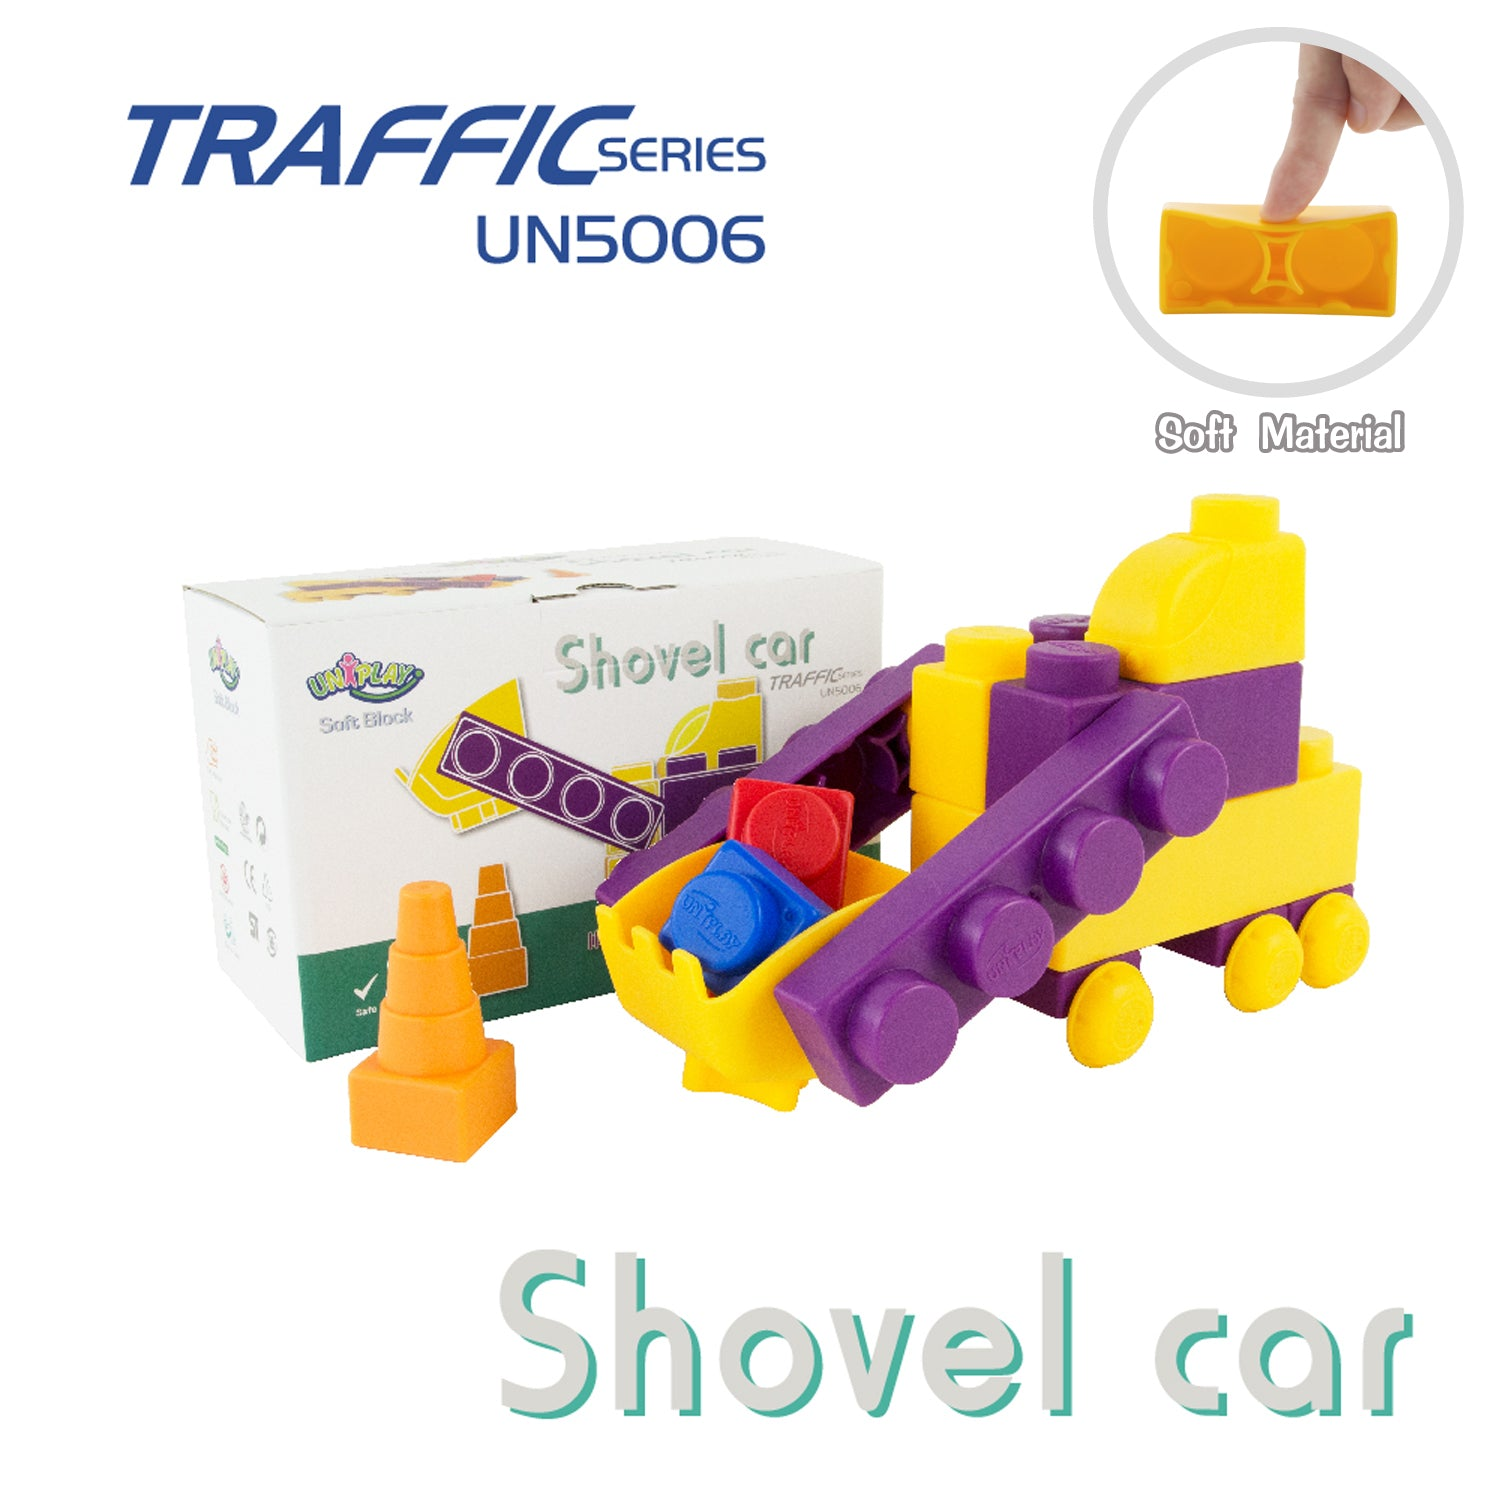 UNiPLAY Soft Building Blocks Traffic Series Shovel Car Set (#UN5006)(24 sets a ctn)